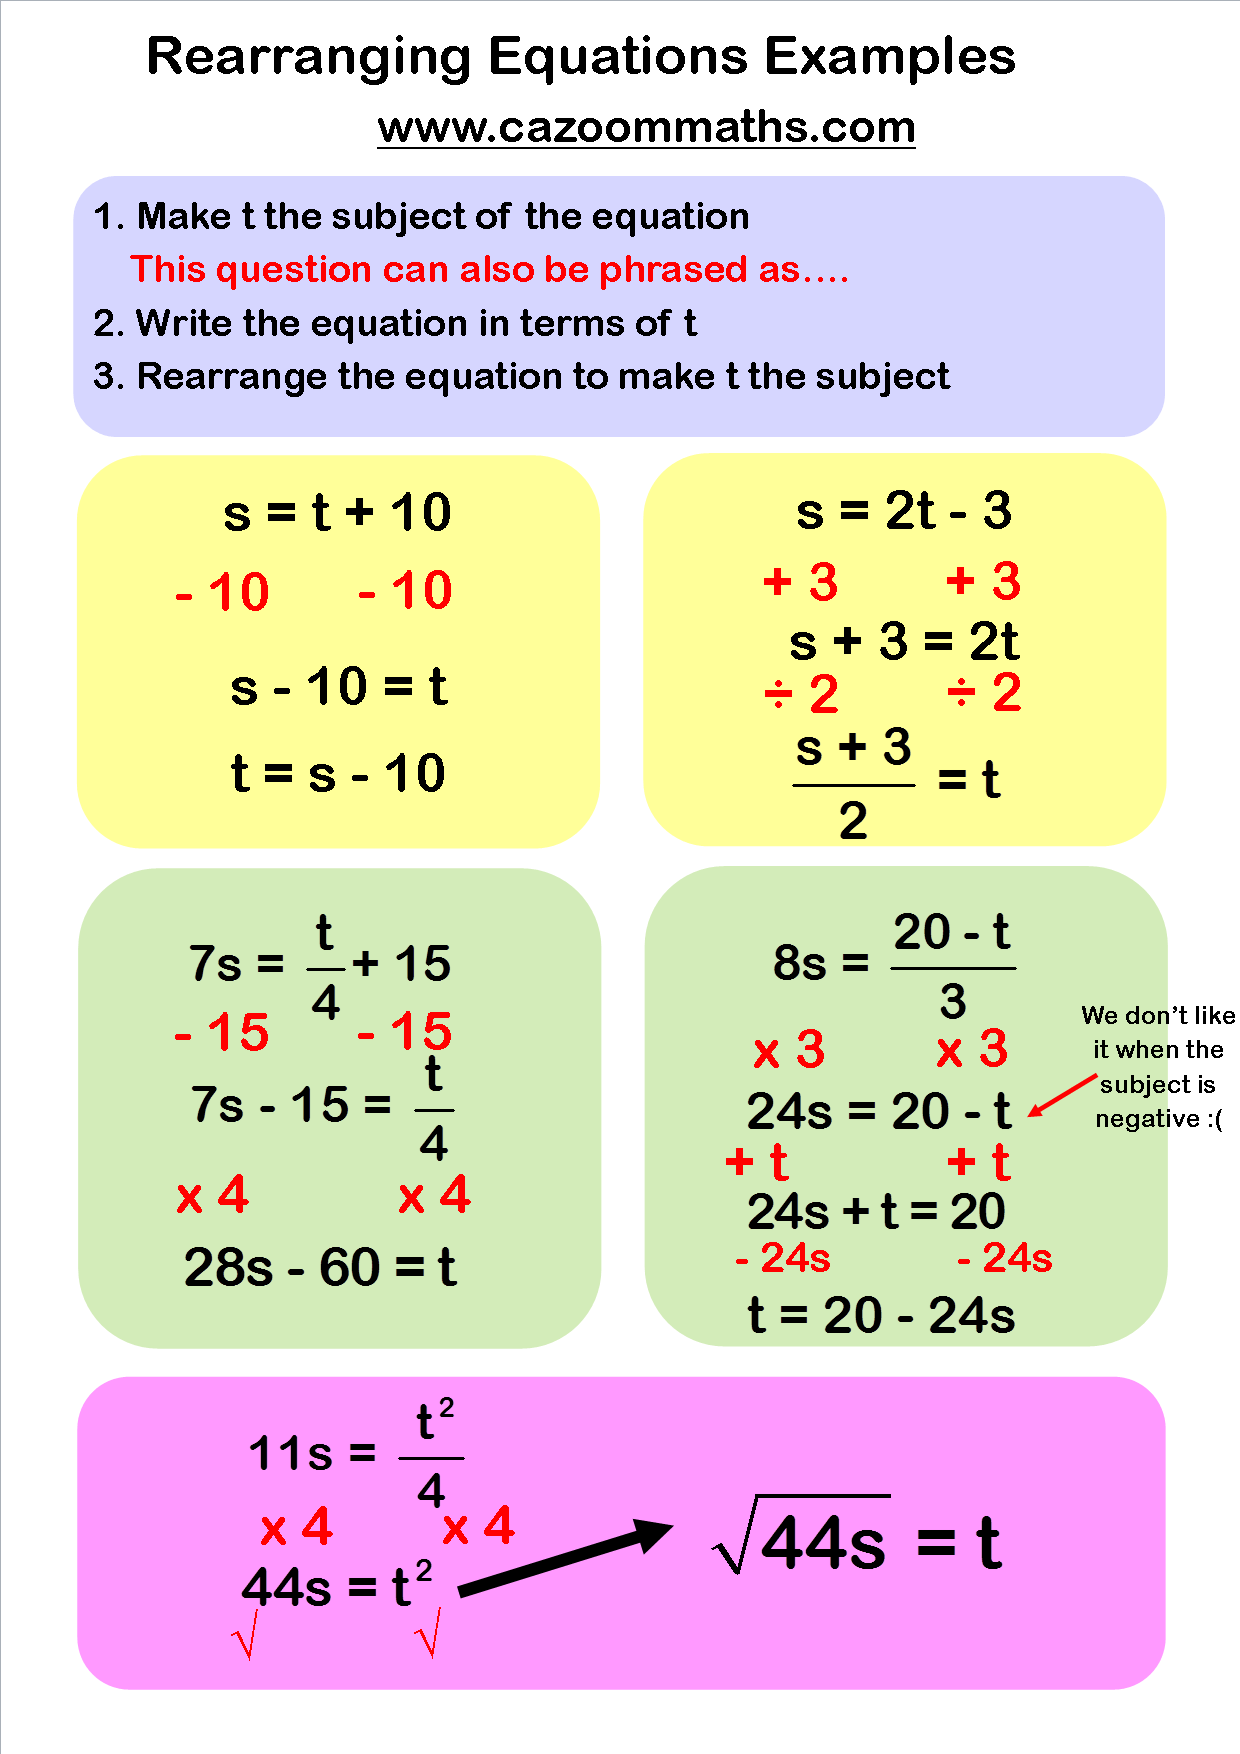 worksheet Rearranging Equations Worksheet rearranging equations examples cazoom maths worksheets